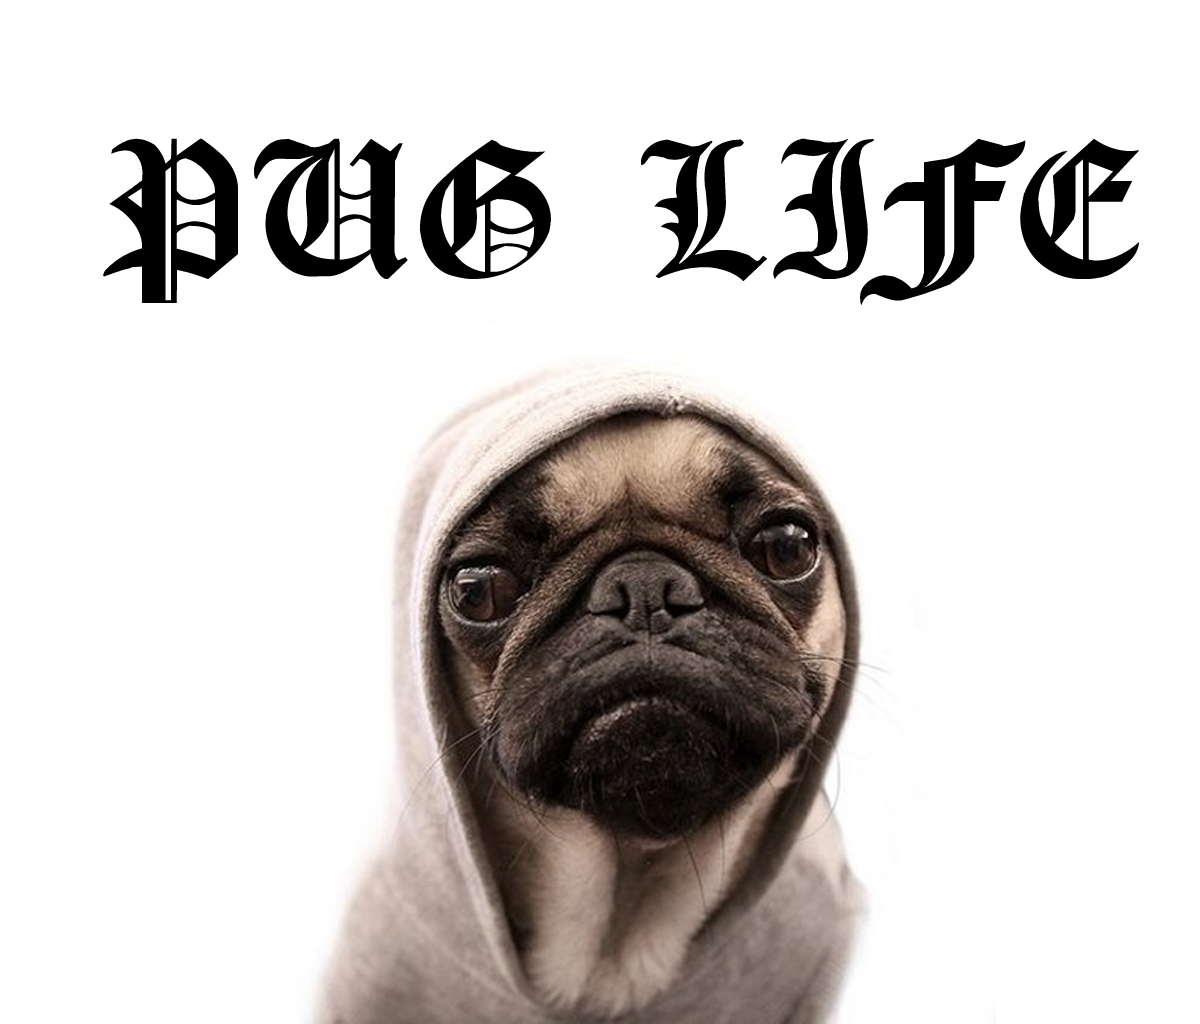 pug-life-funny-pictures